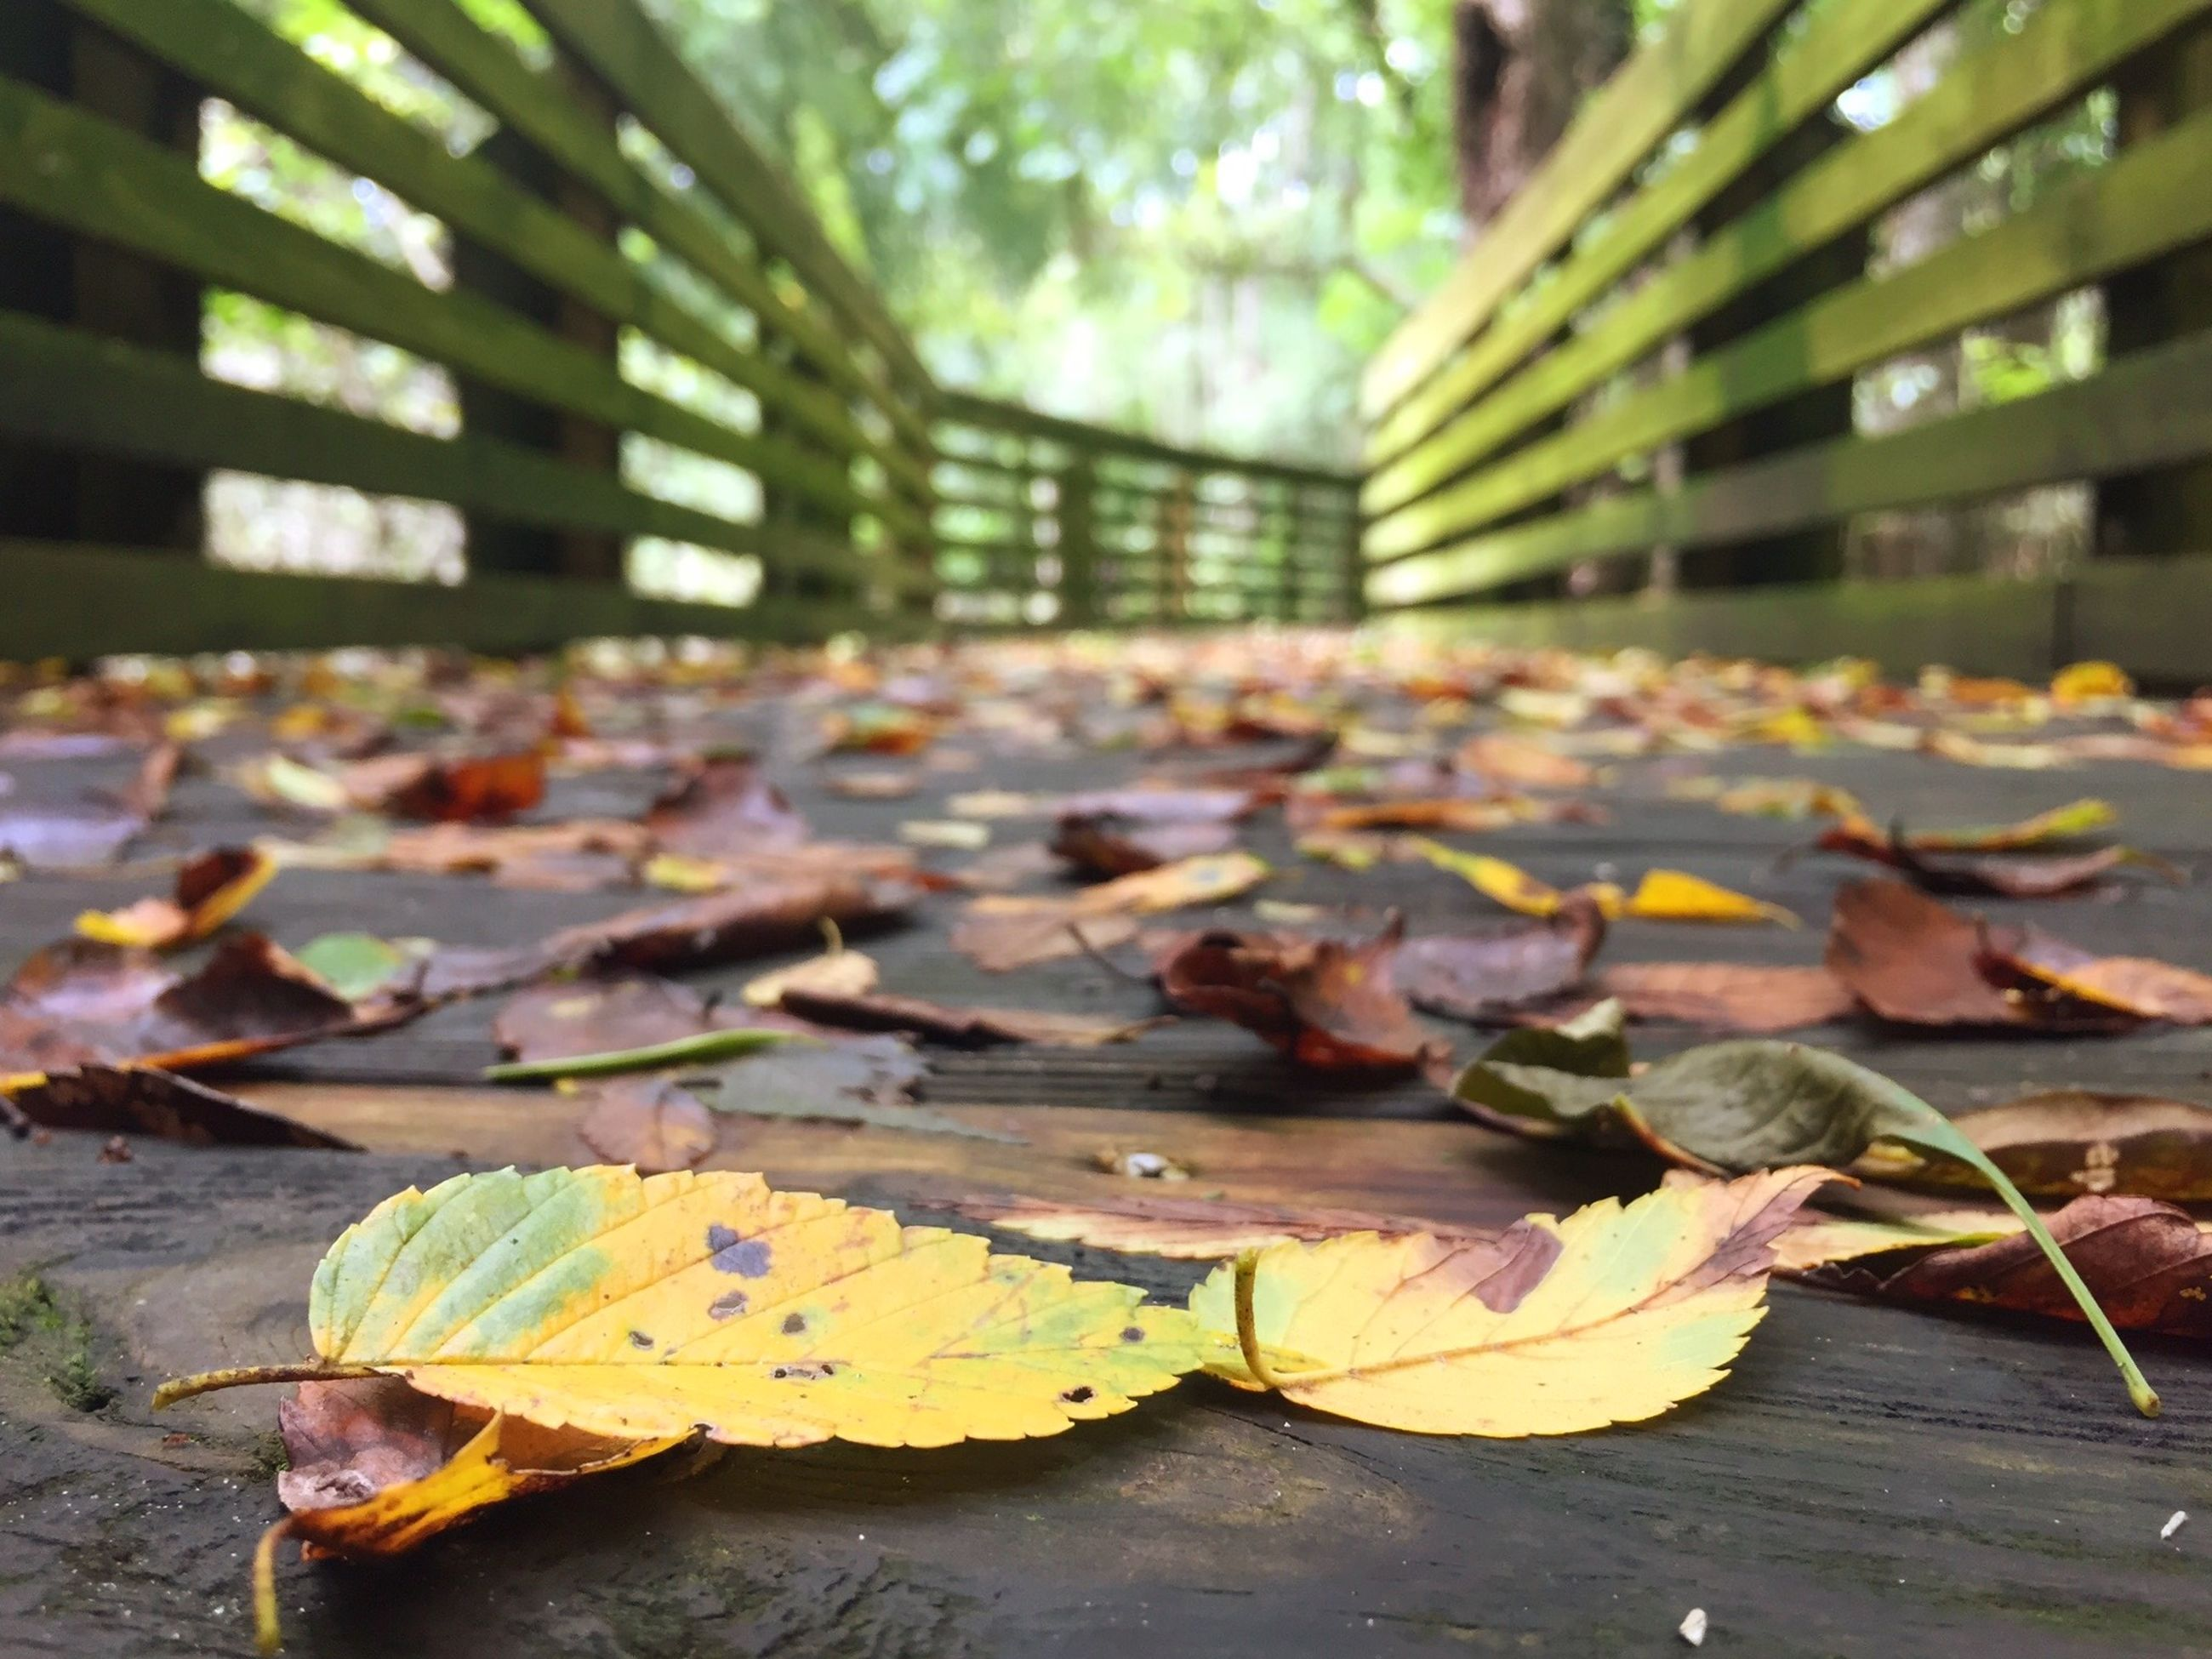 autumn, leaf, change, leaves, fallen, dry, season, street, animal themes, outdoors, day, nature, bird, falling, sidewalk, no people, maple leaf, selective focus, focus on foreground, orange color